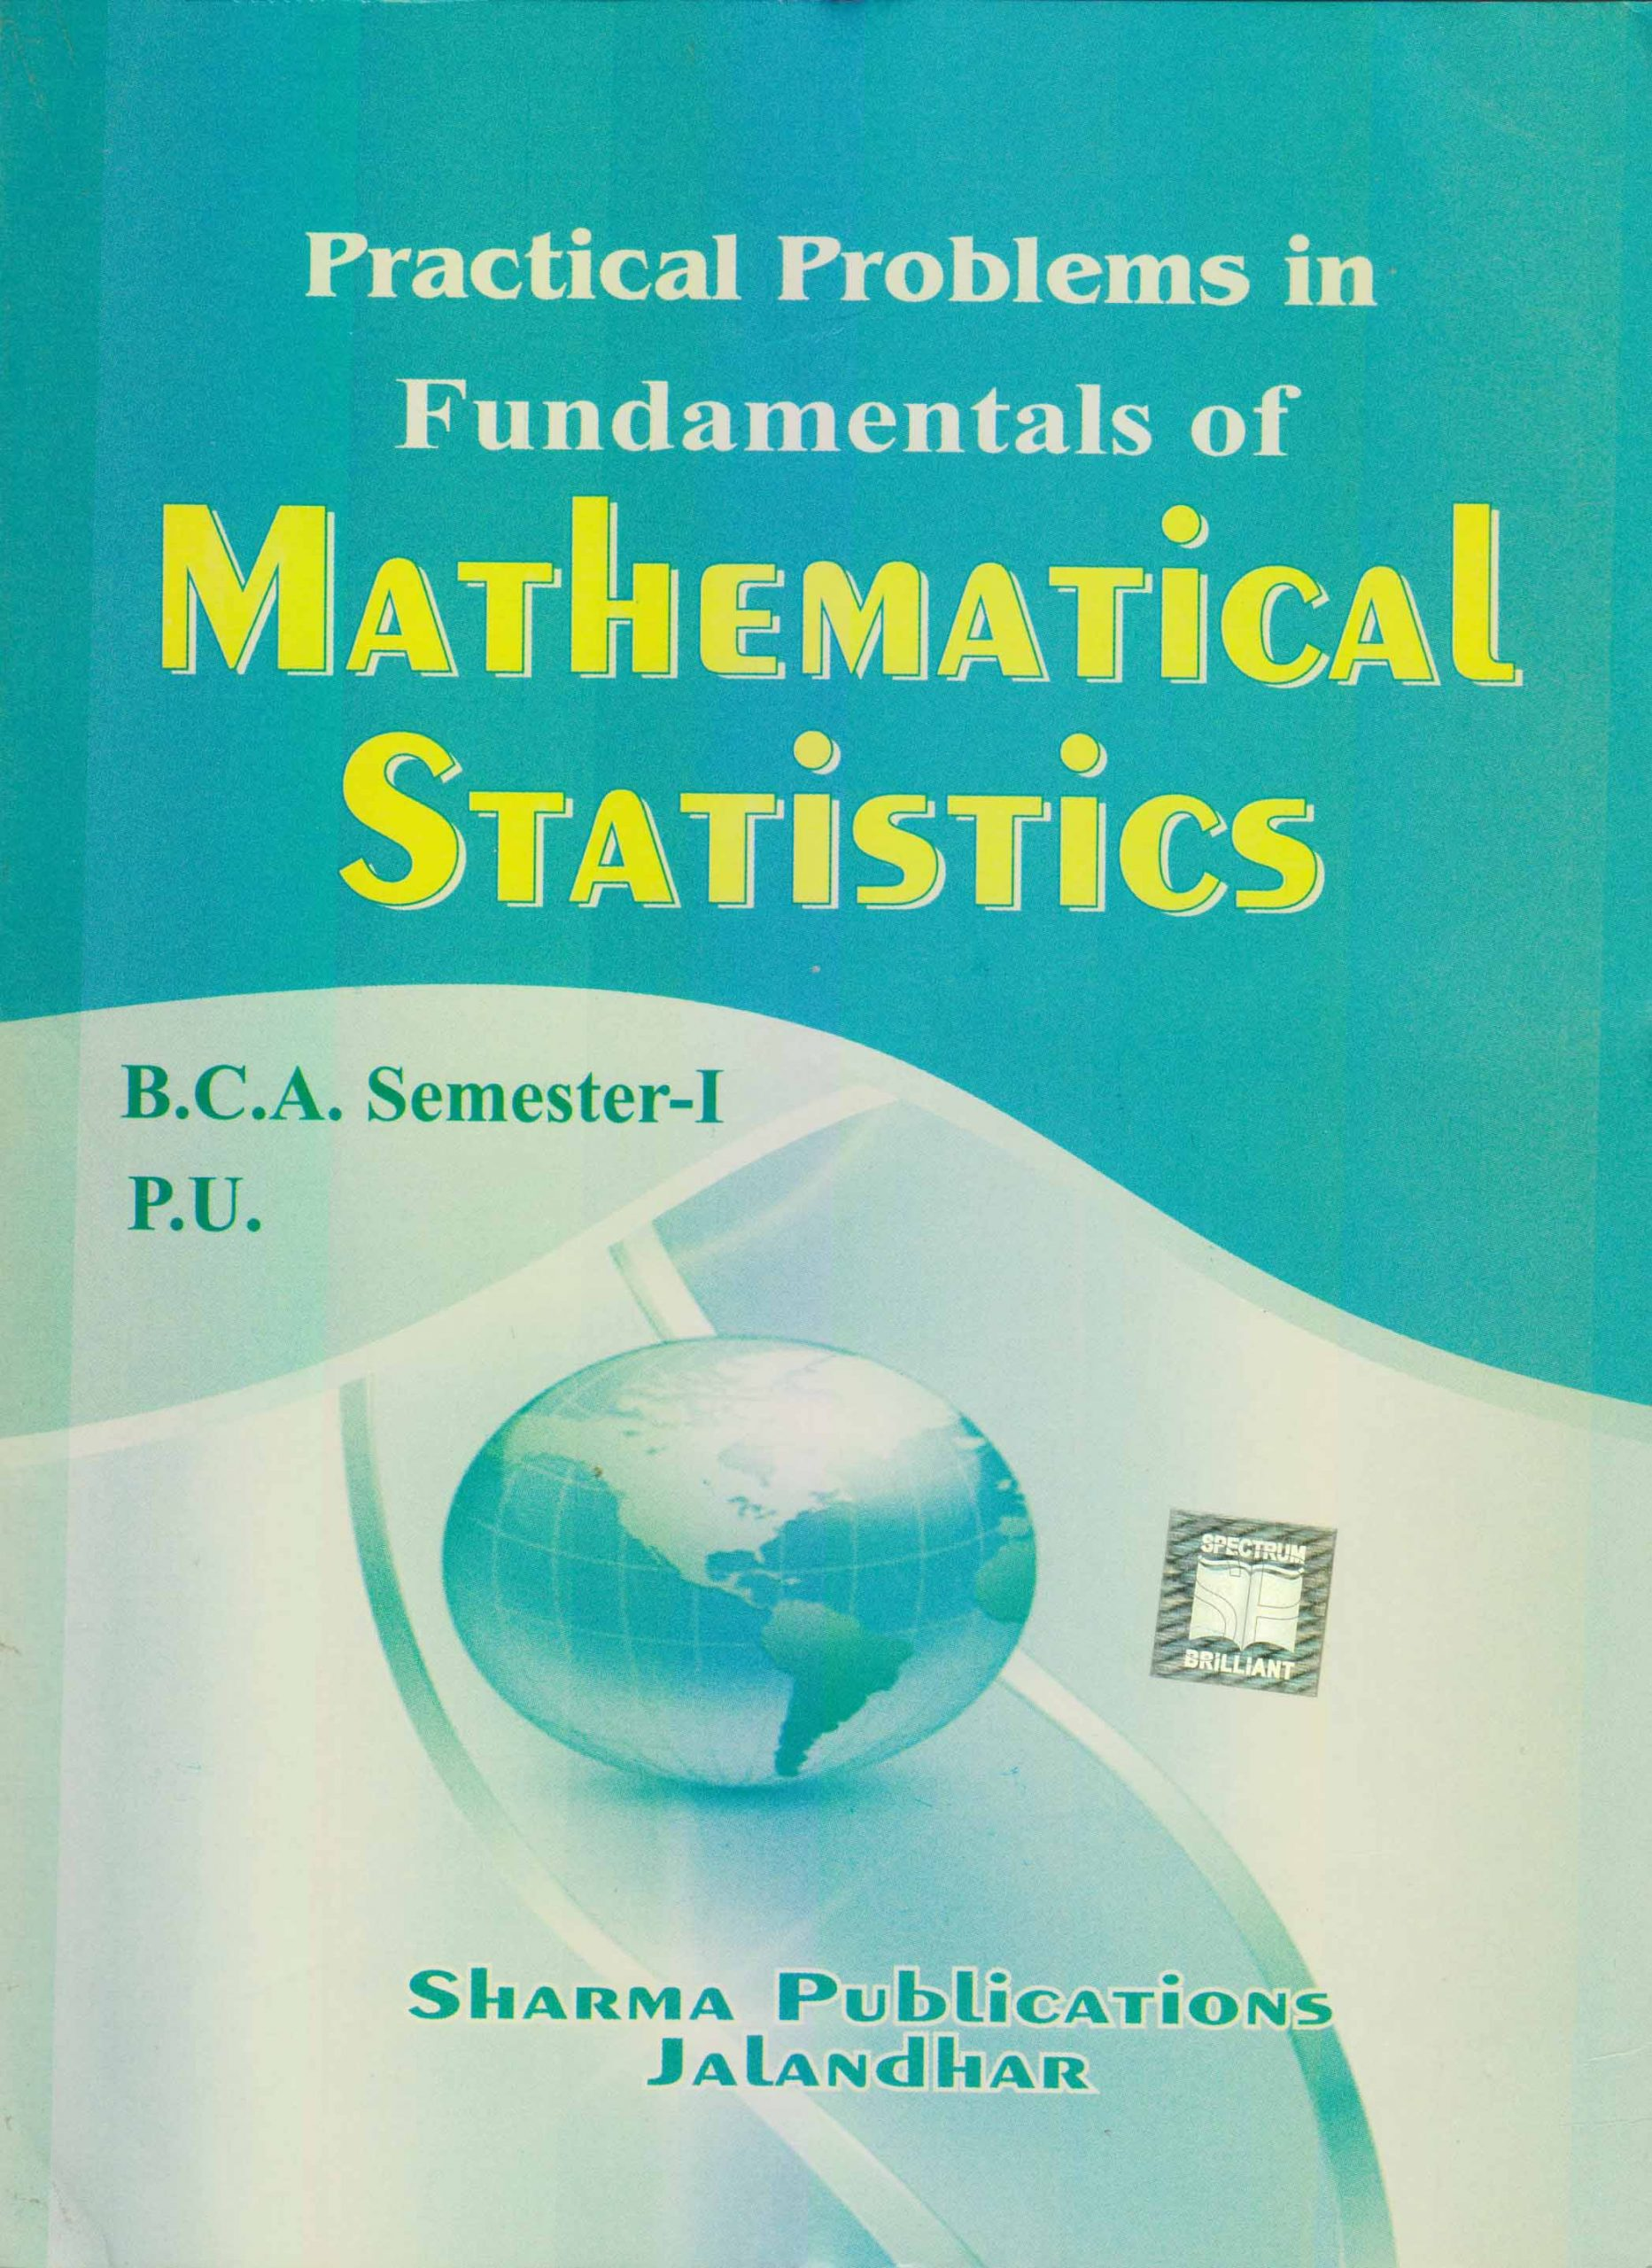 Practical Problems in Fundamentals of Mathematical Statistics for B.C.A. Sem. 1 (P.U.) by Experienced Authors